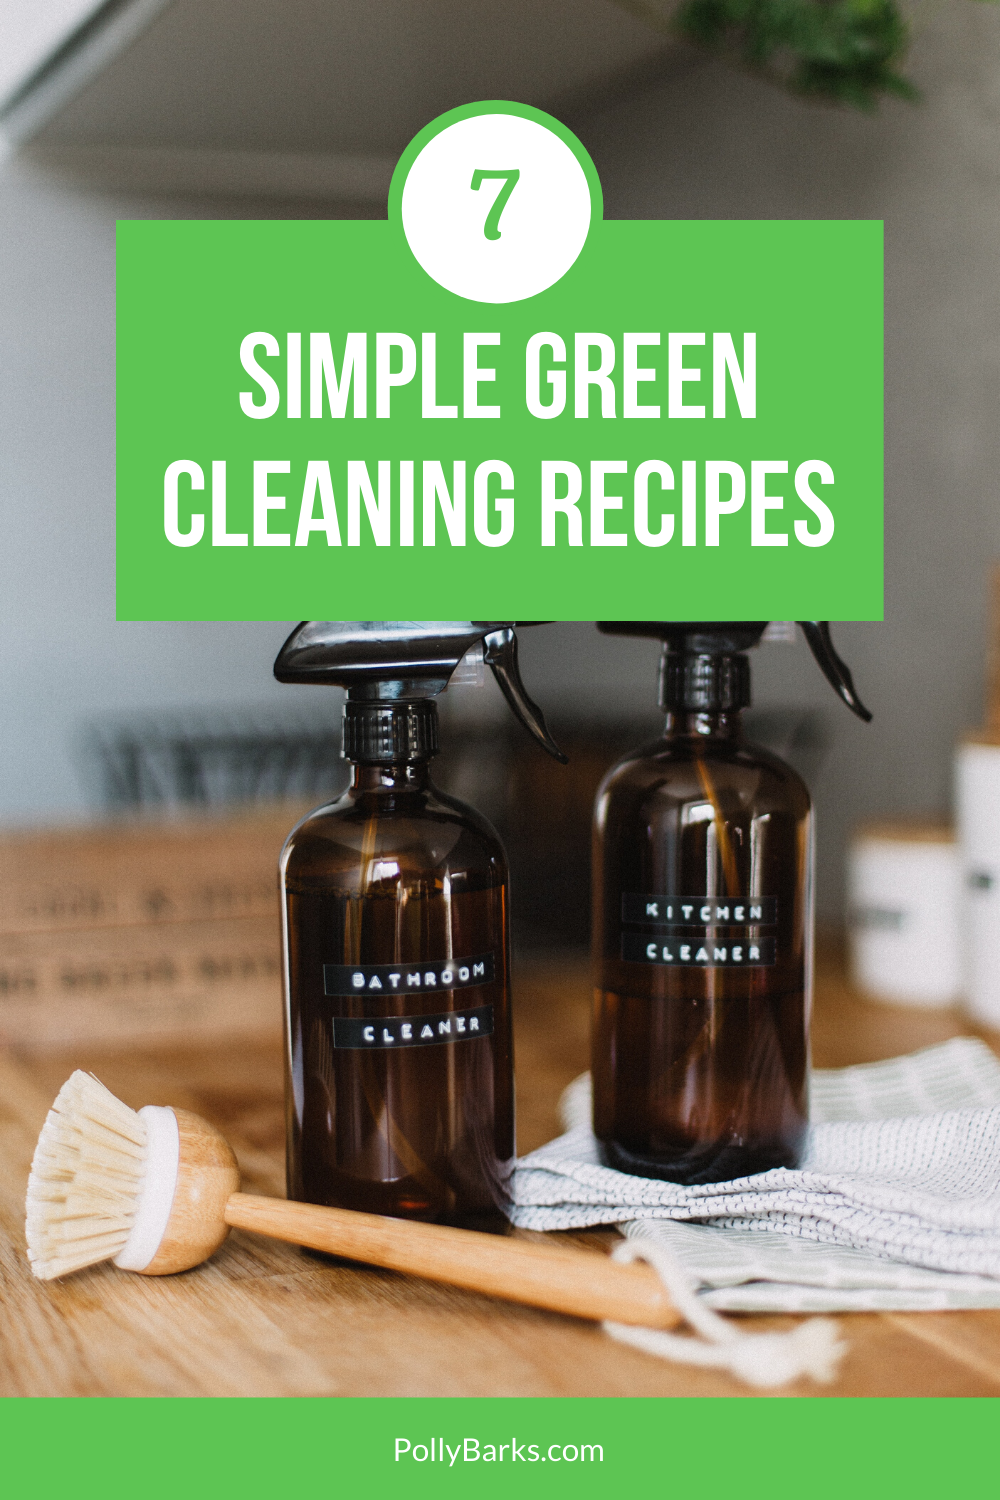 The Ultimate Zero Waste Cleaning Recipe List In 2020 Green Cleaning Recipes Simple Green Cleaning Cleaning Recipes